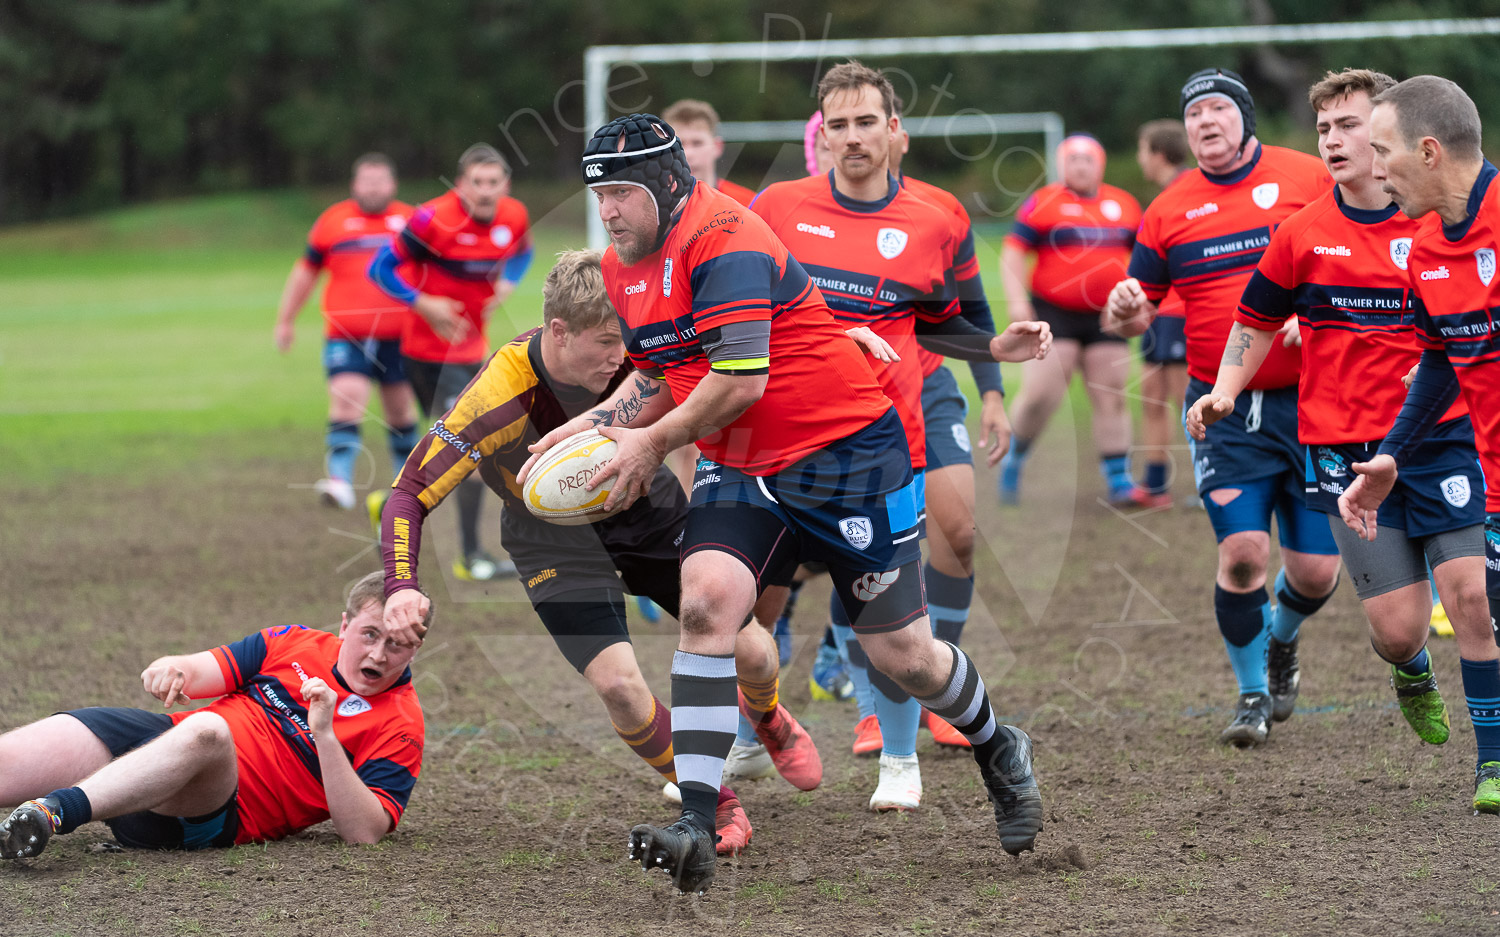 20181027 Amp Extras vs St Neots 2nd XV #2154